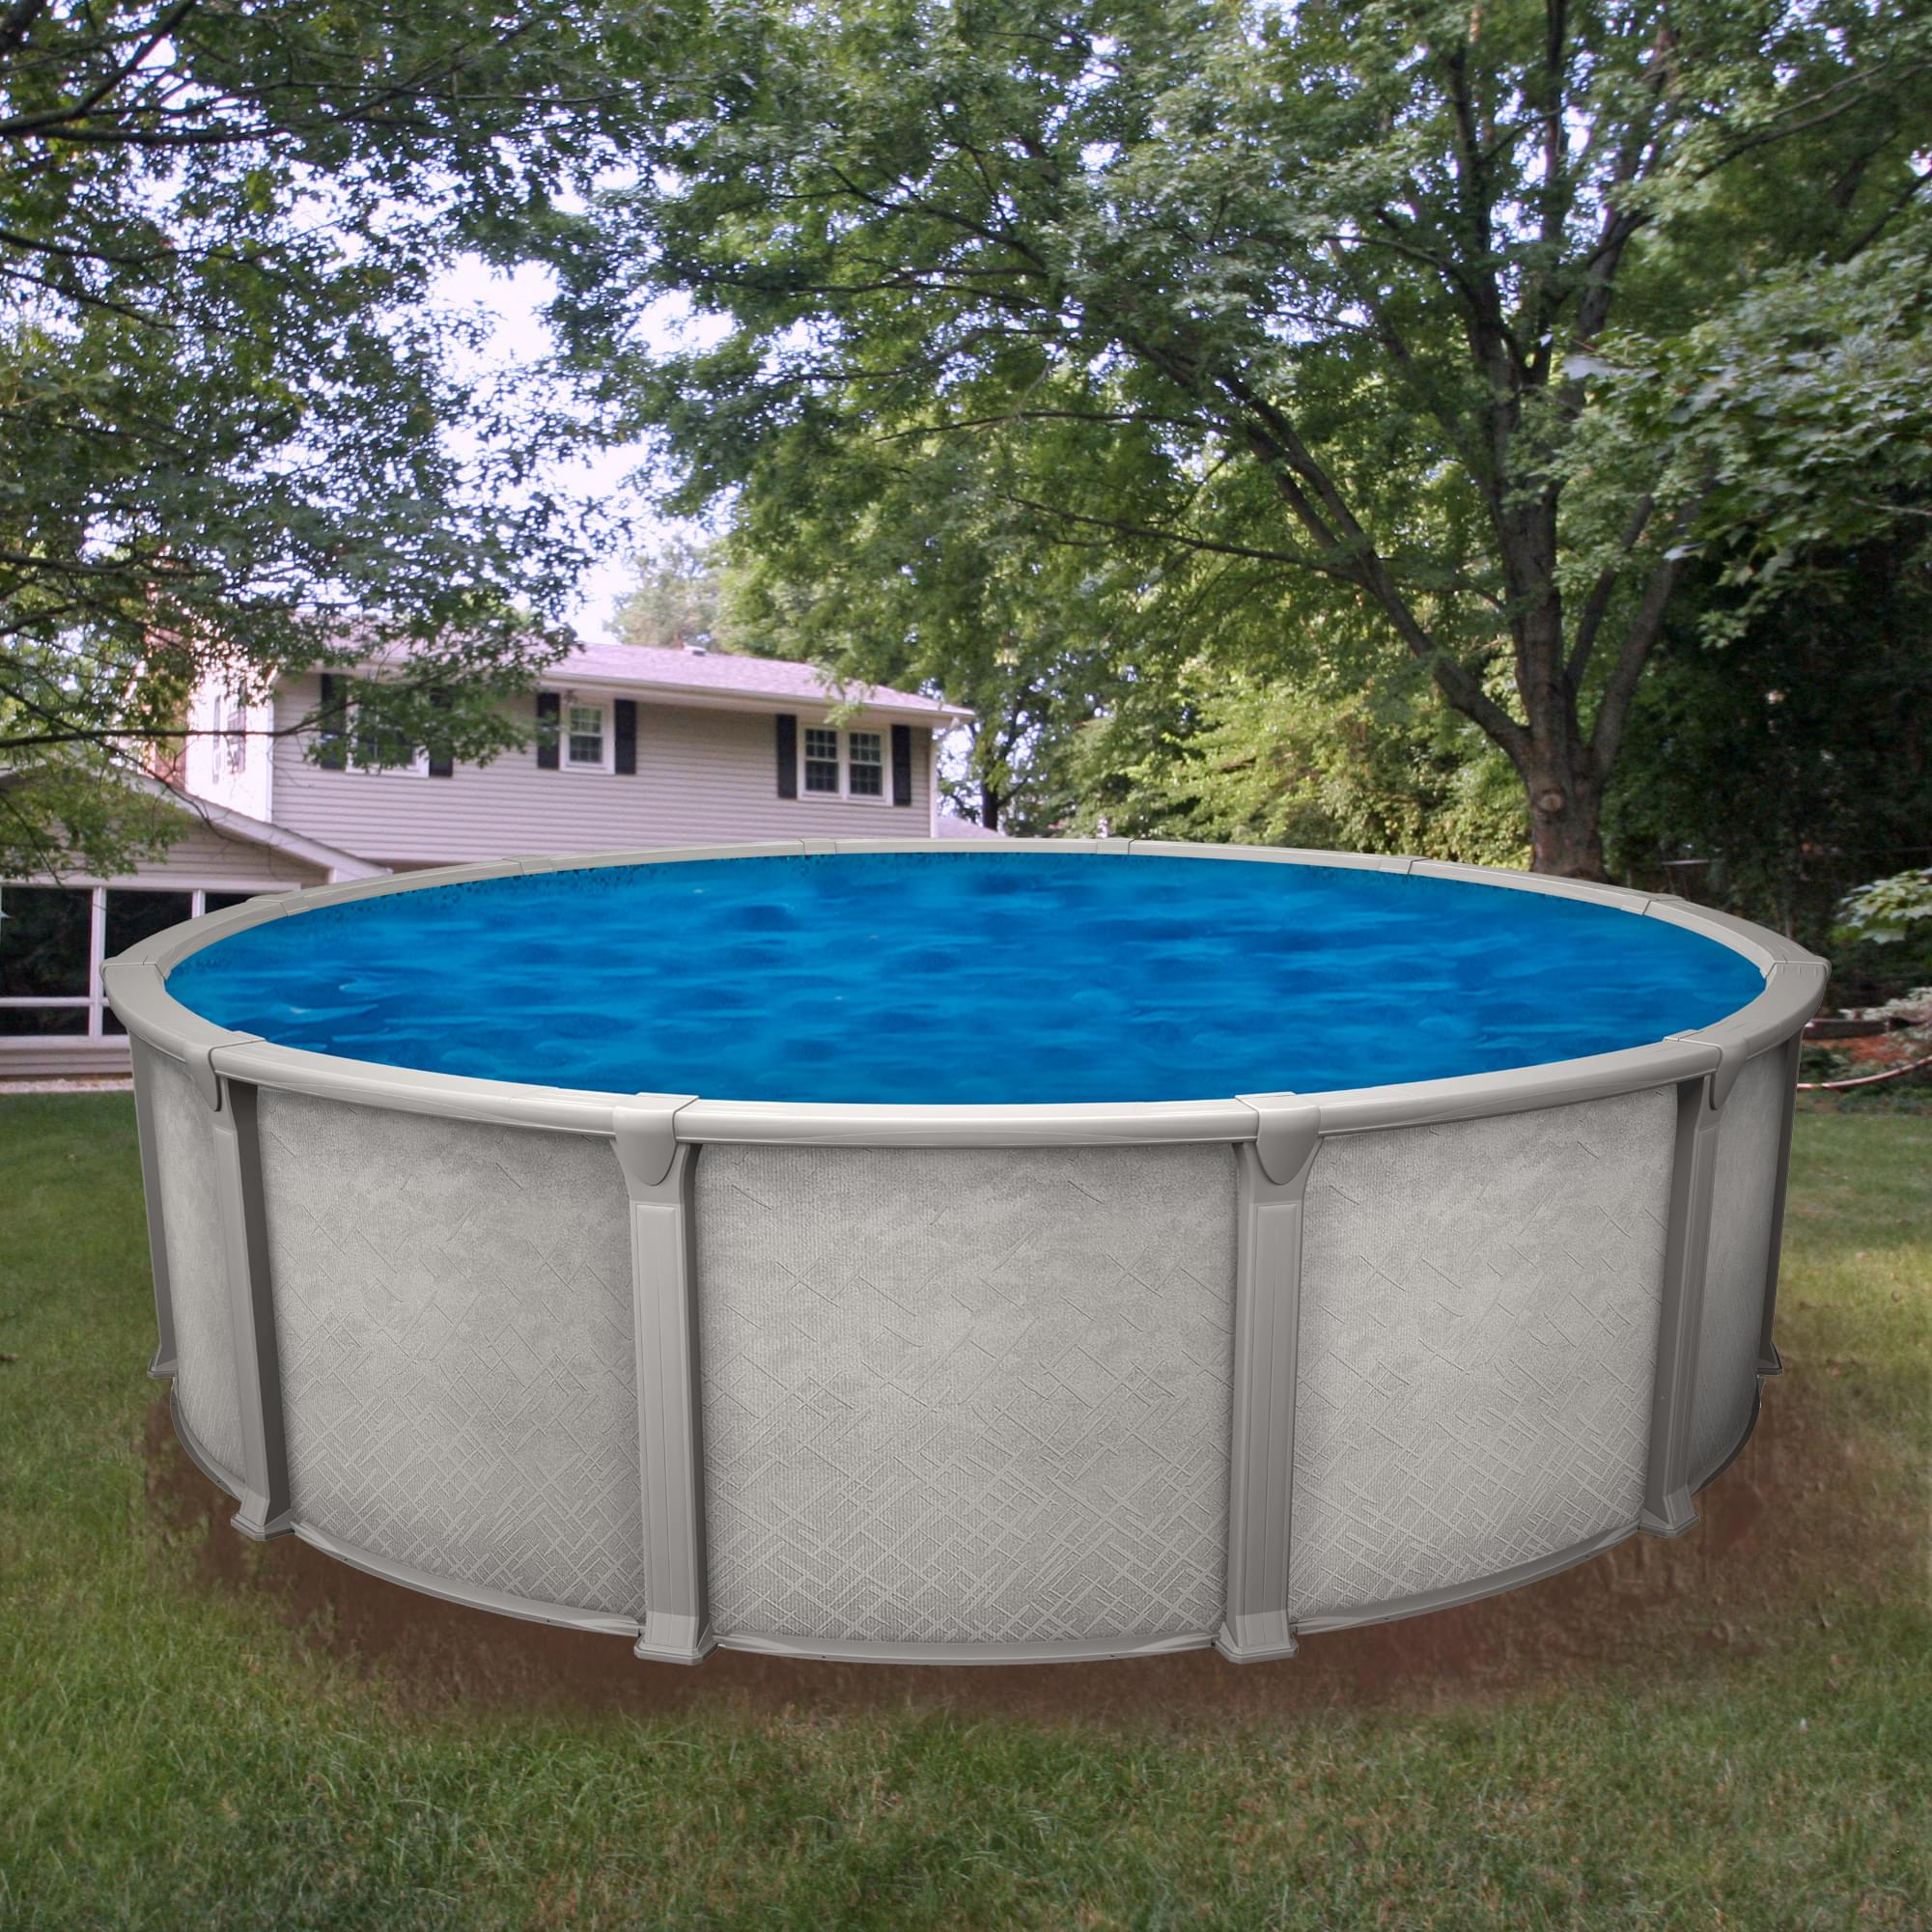 Galaxy 15 ft round above ground pool pool supplies canada for Club piscine fermeture piscine hors terre